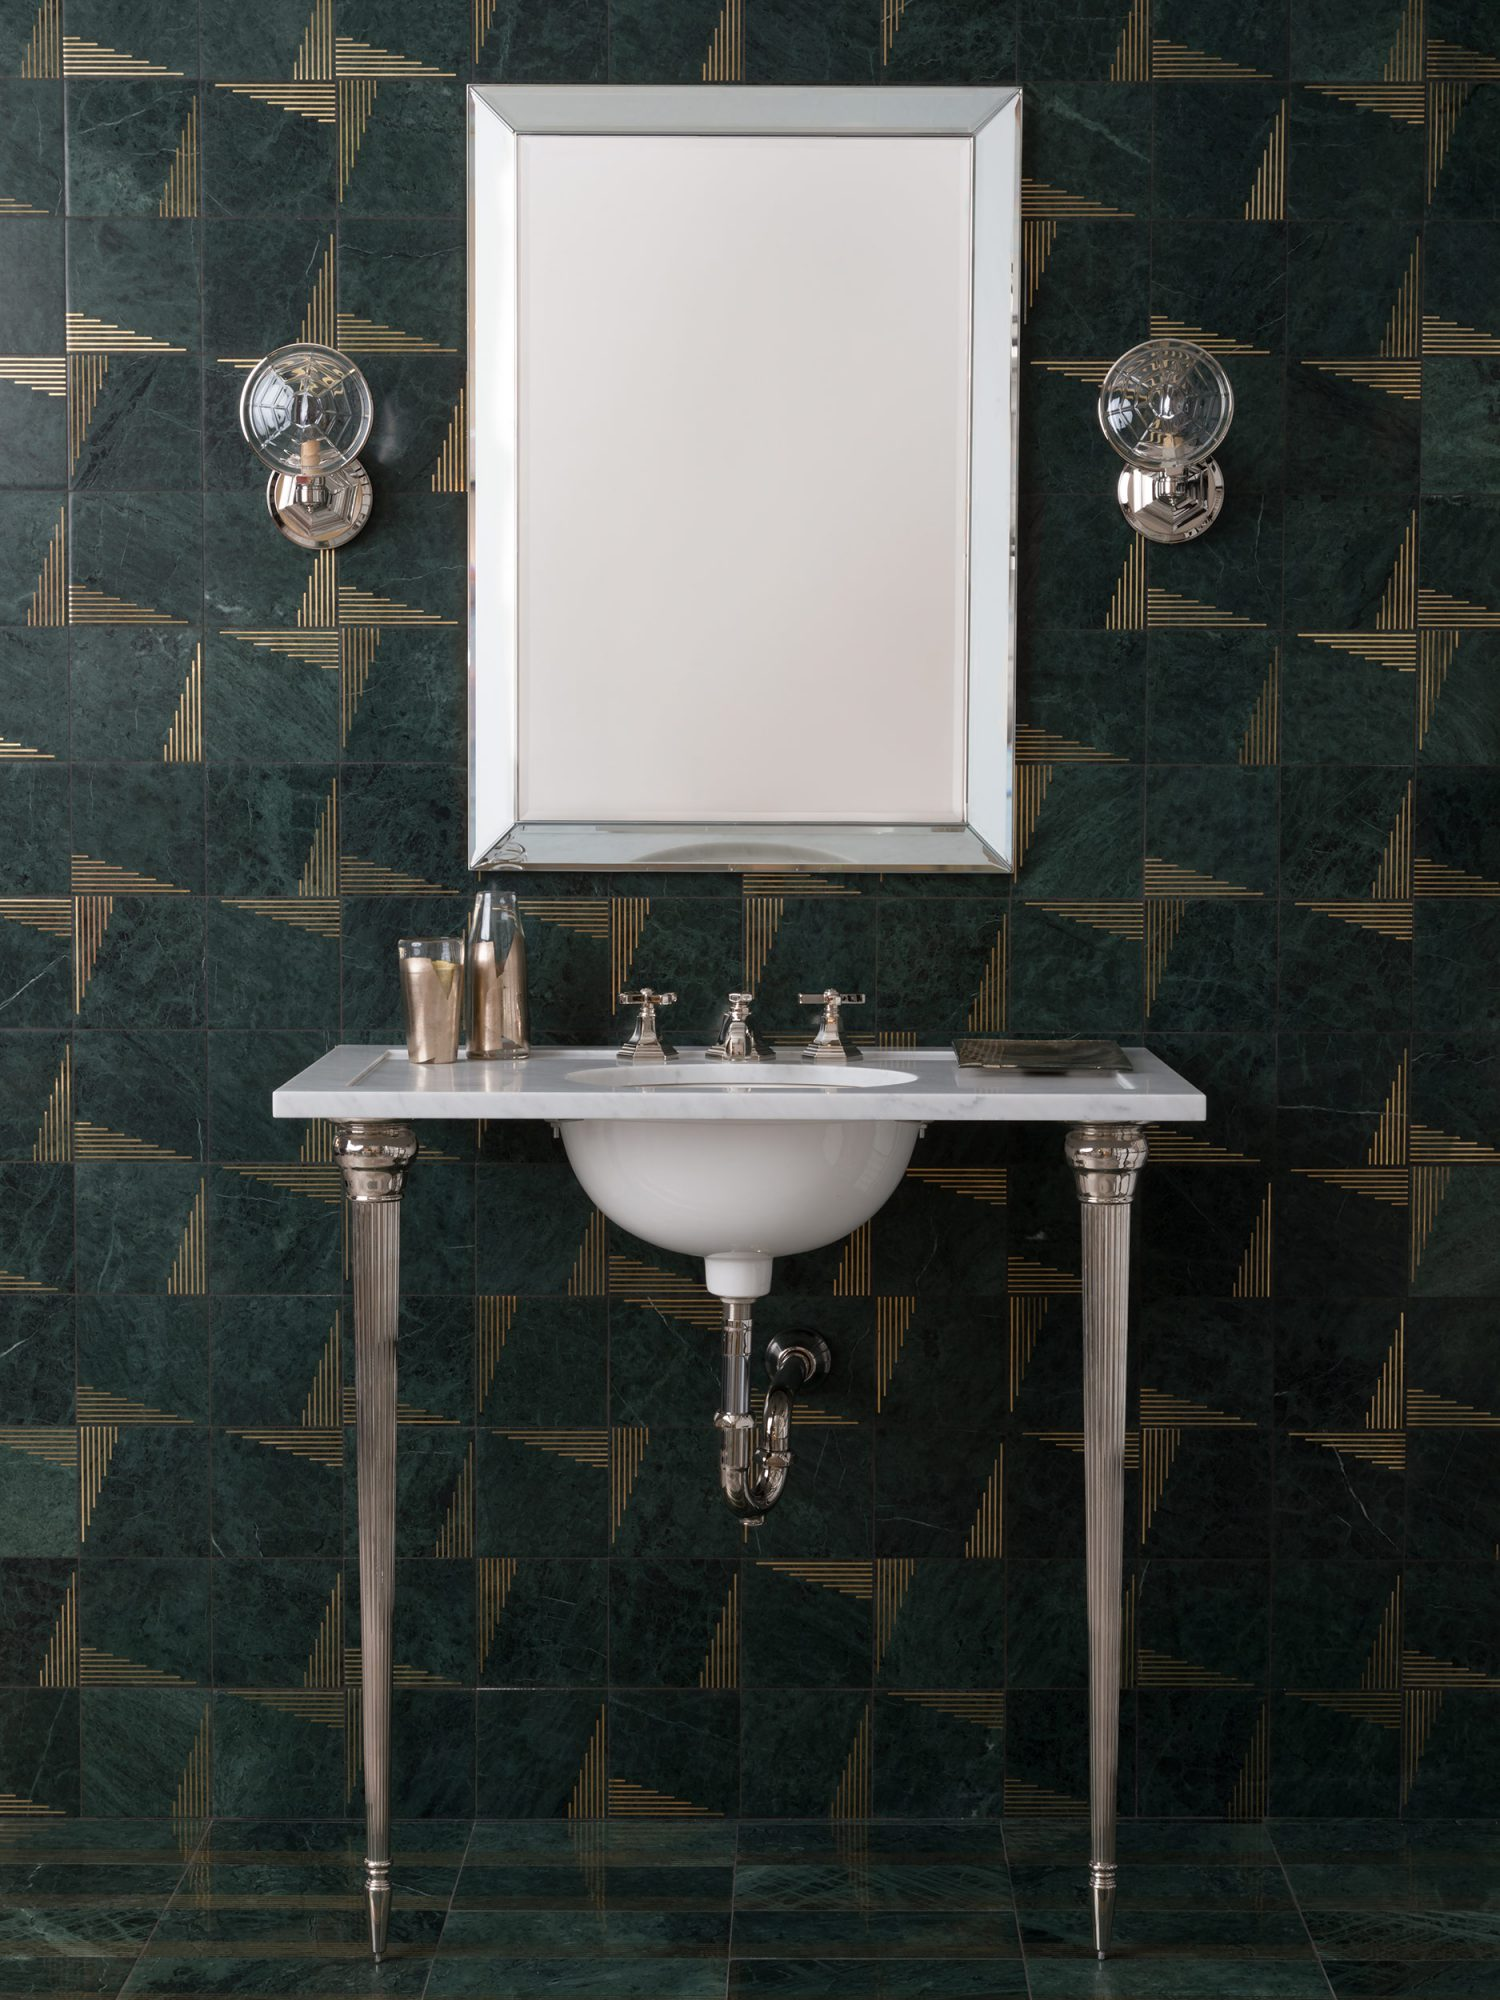 West One Bathrooms Chelsea Design Centre Showroom 6b